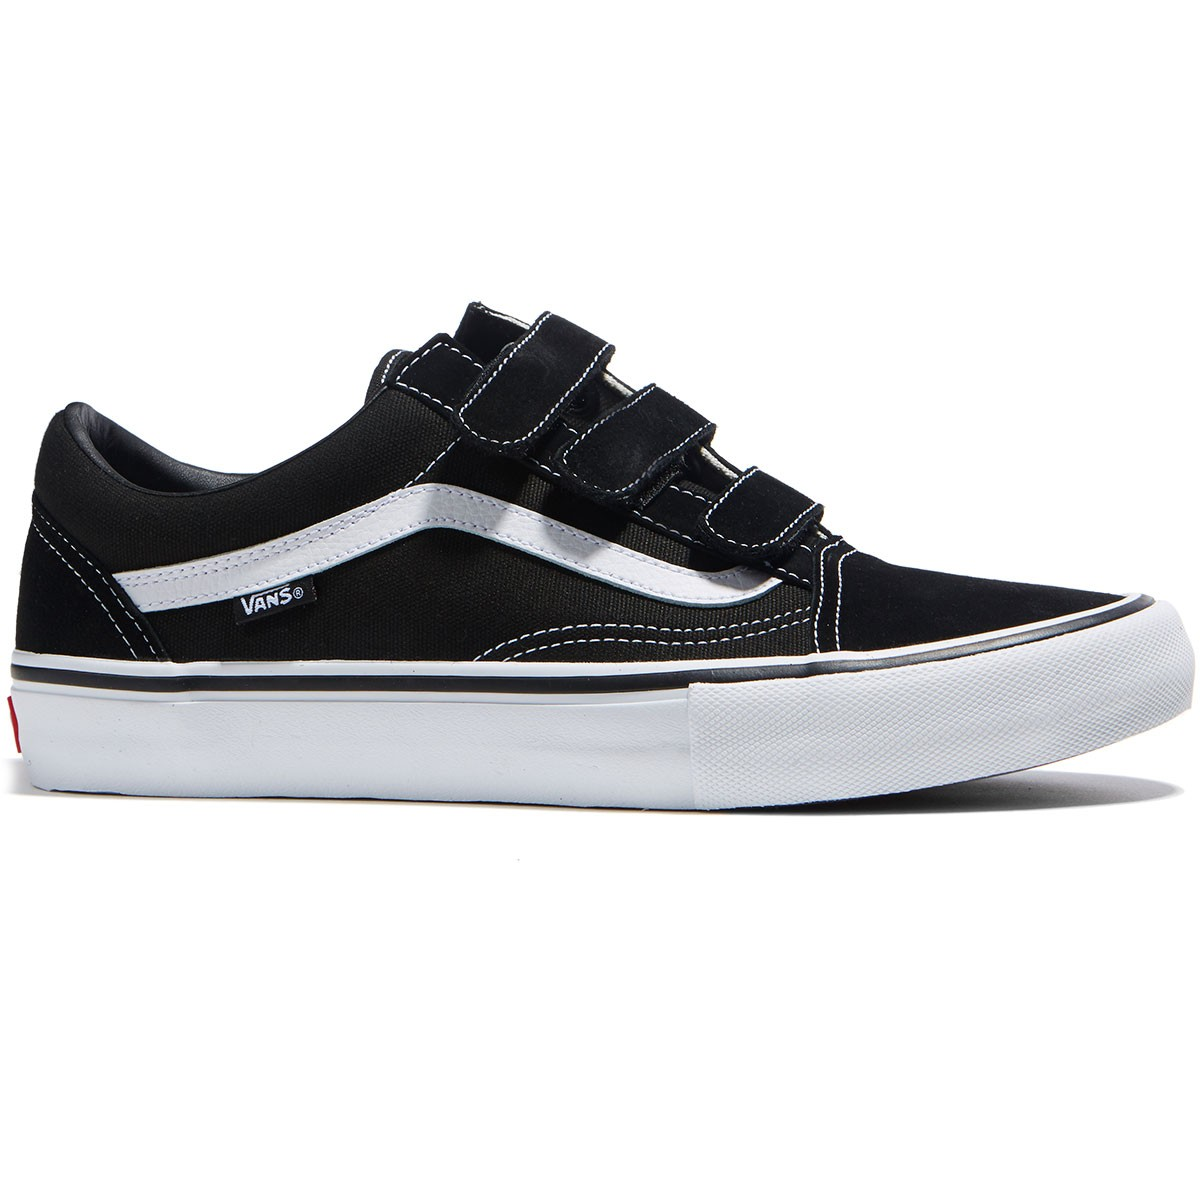 vans old skool priz pro shoes. Black Bedroom Furniture Sets. Home Design Ideas